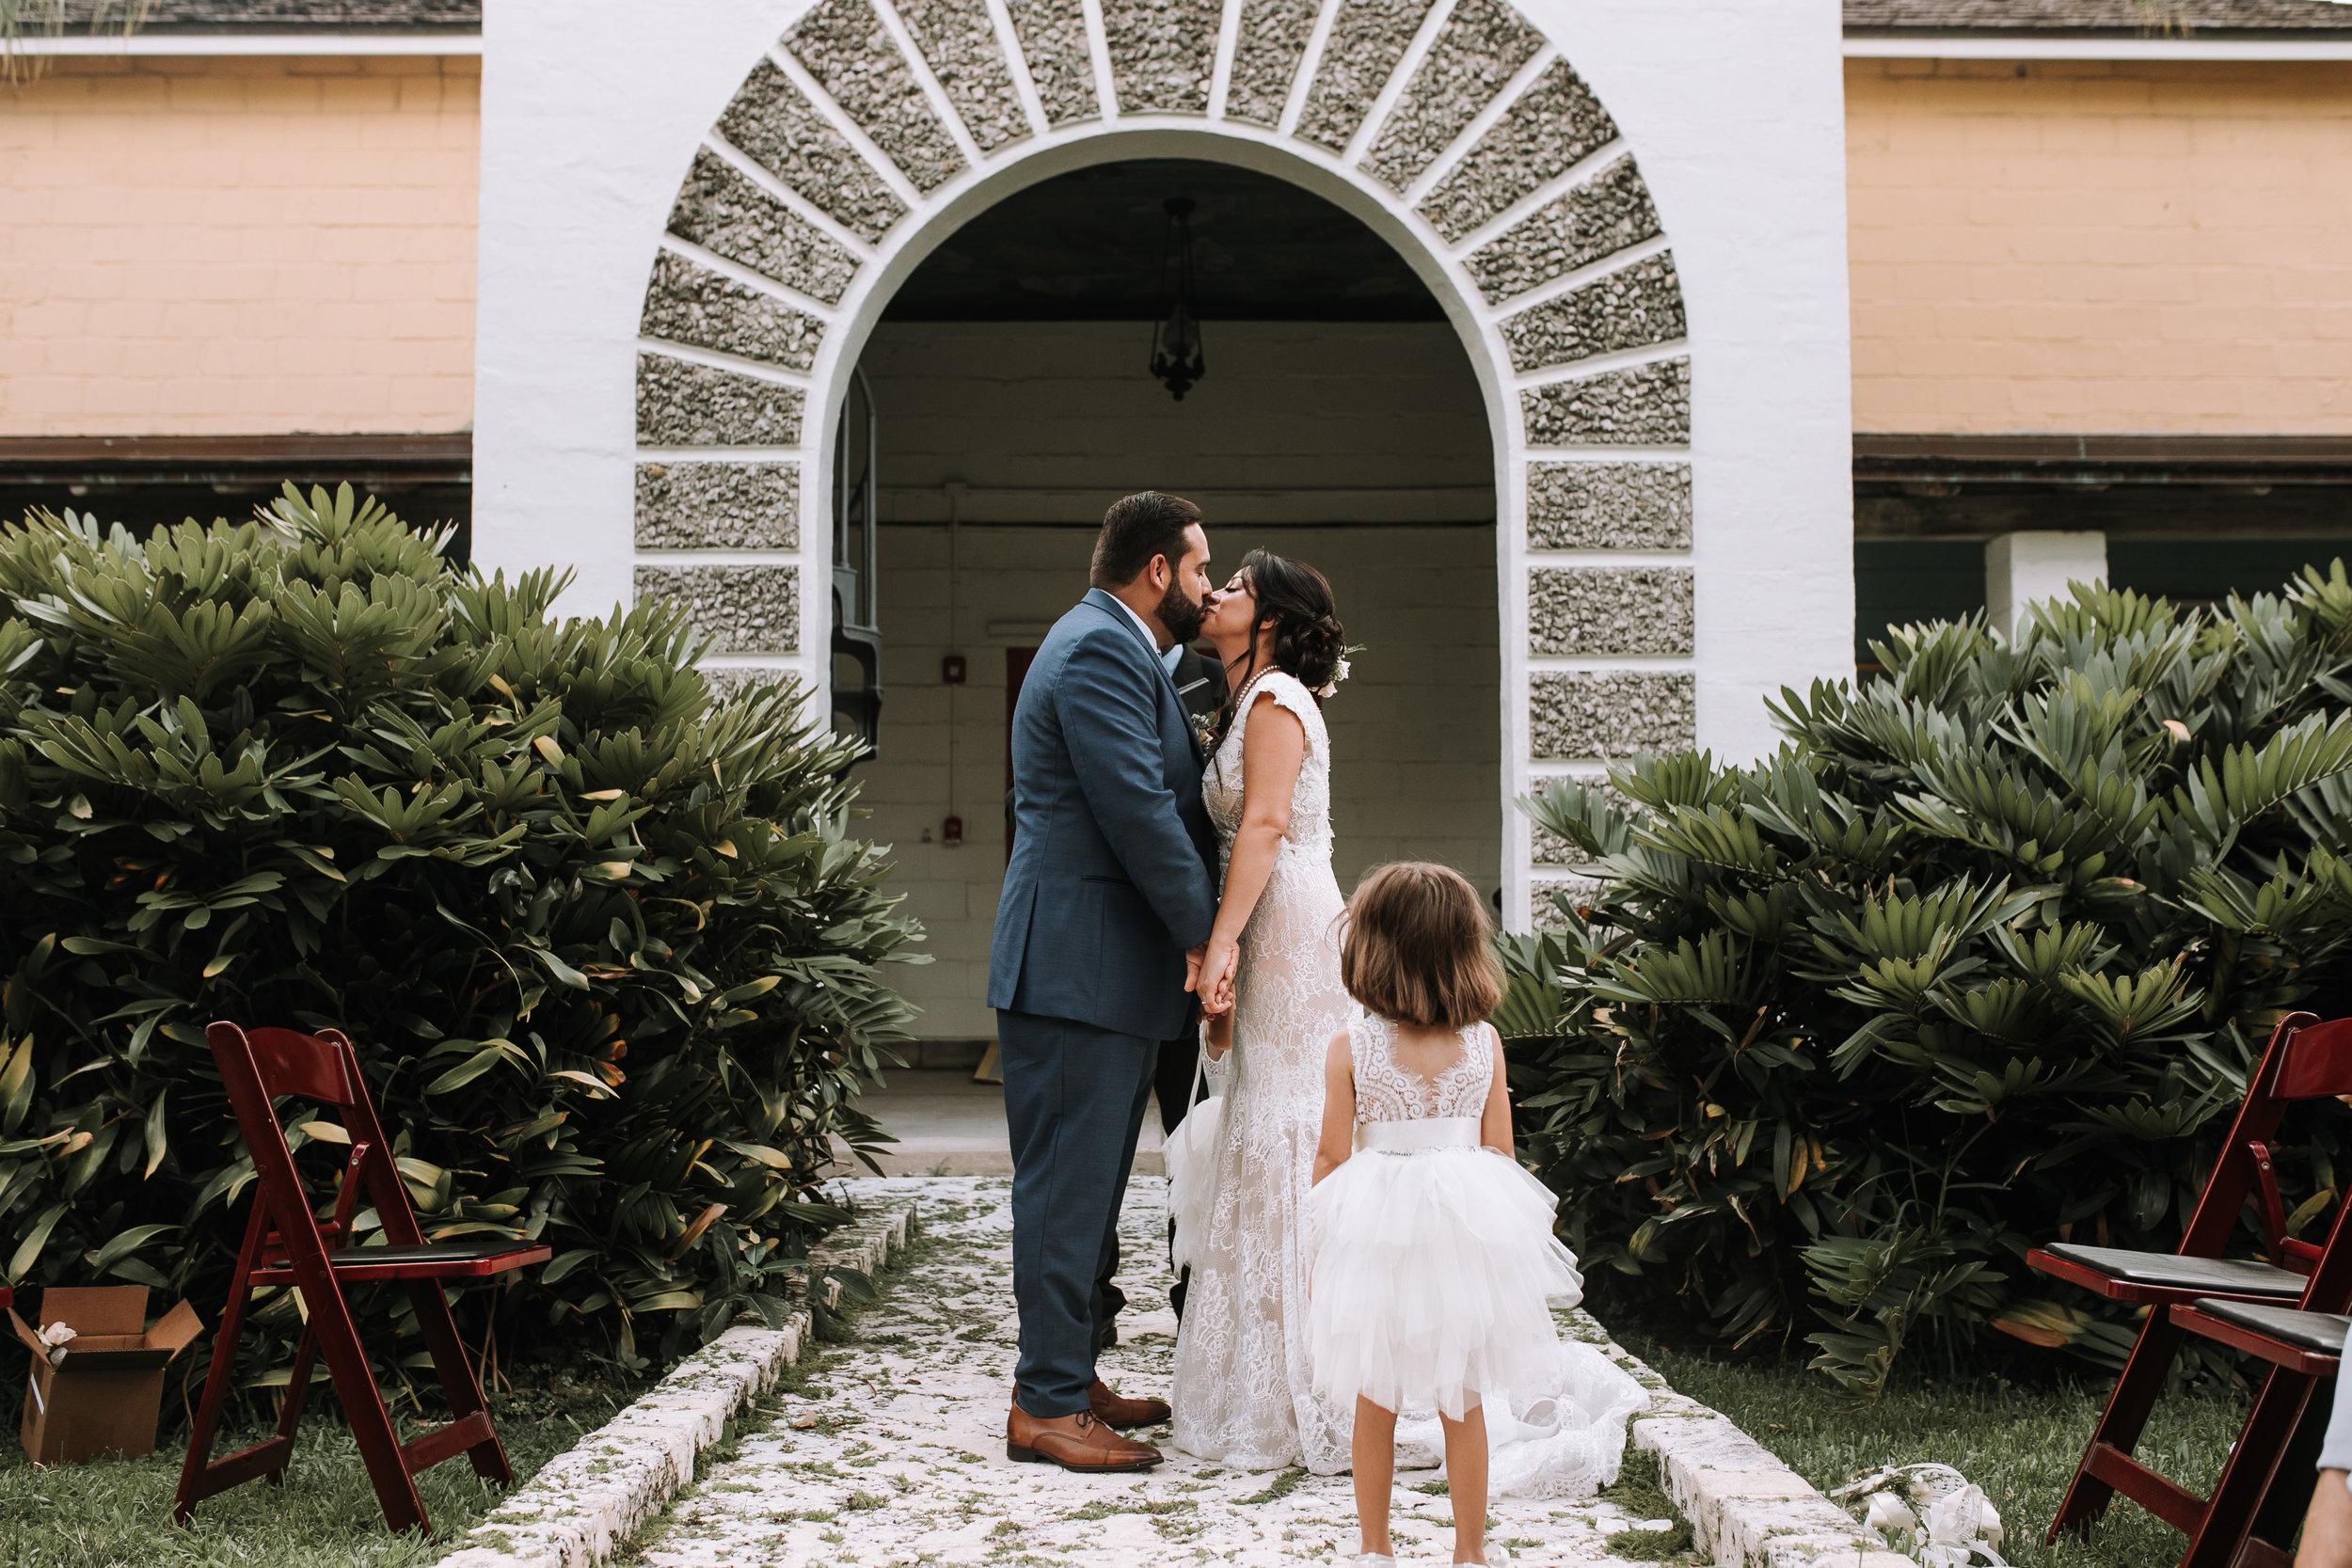 first-kiss-outdoor-wedding-ceremony